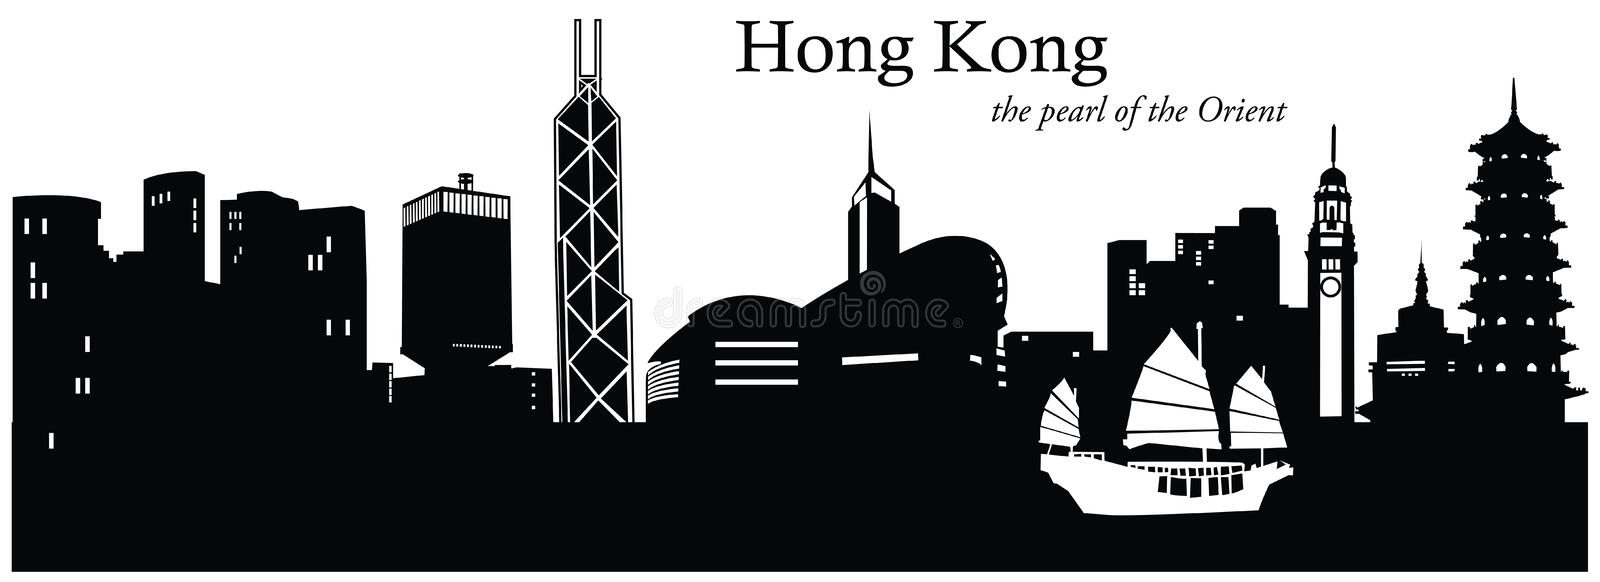 porslin Hong Kong vektor illustrationer